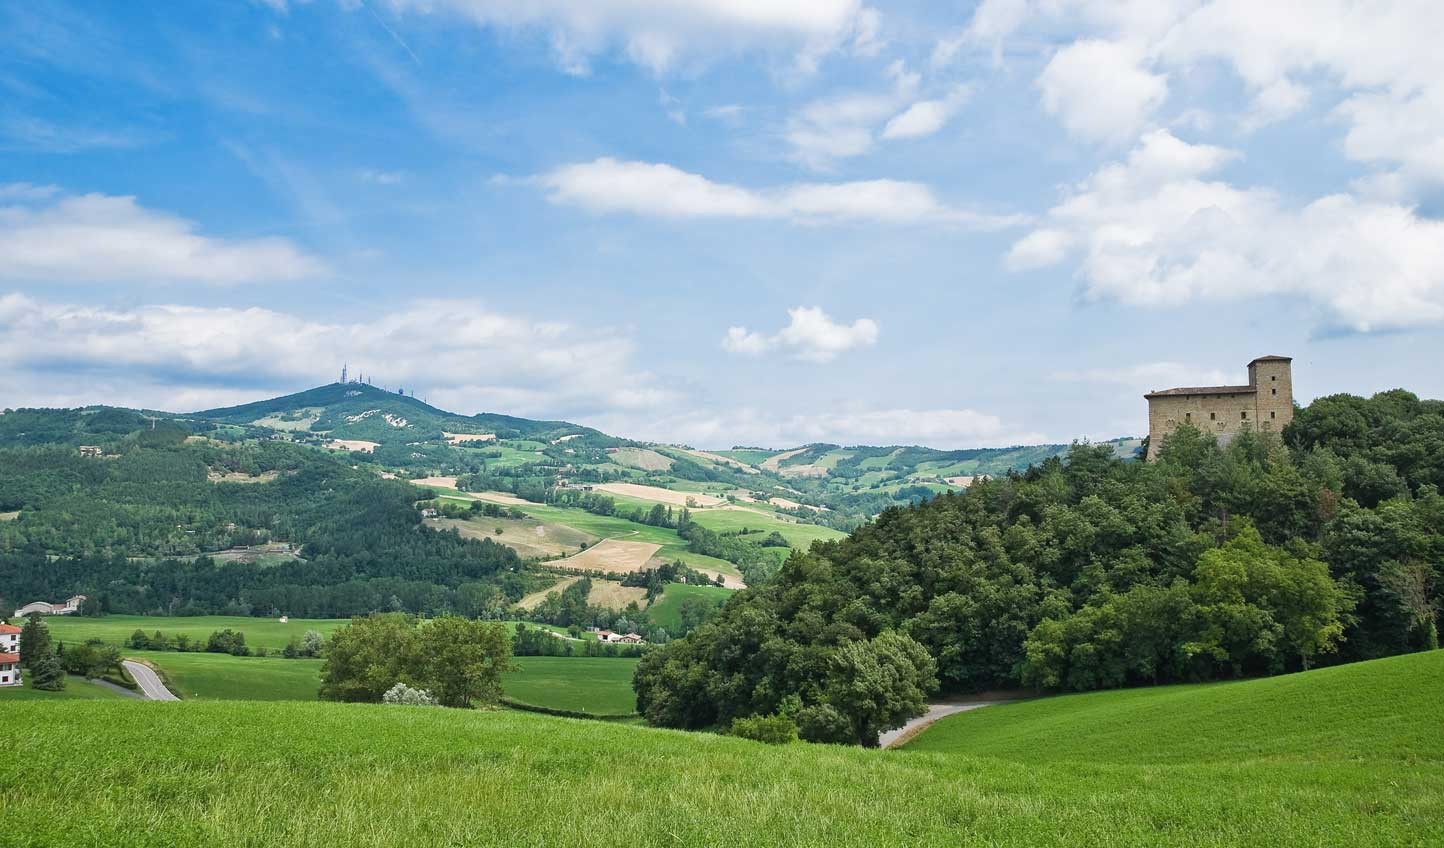 Discover the rolling green hills of Emilia Romagna's countryside